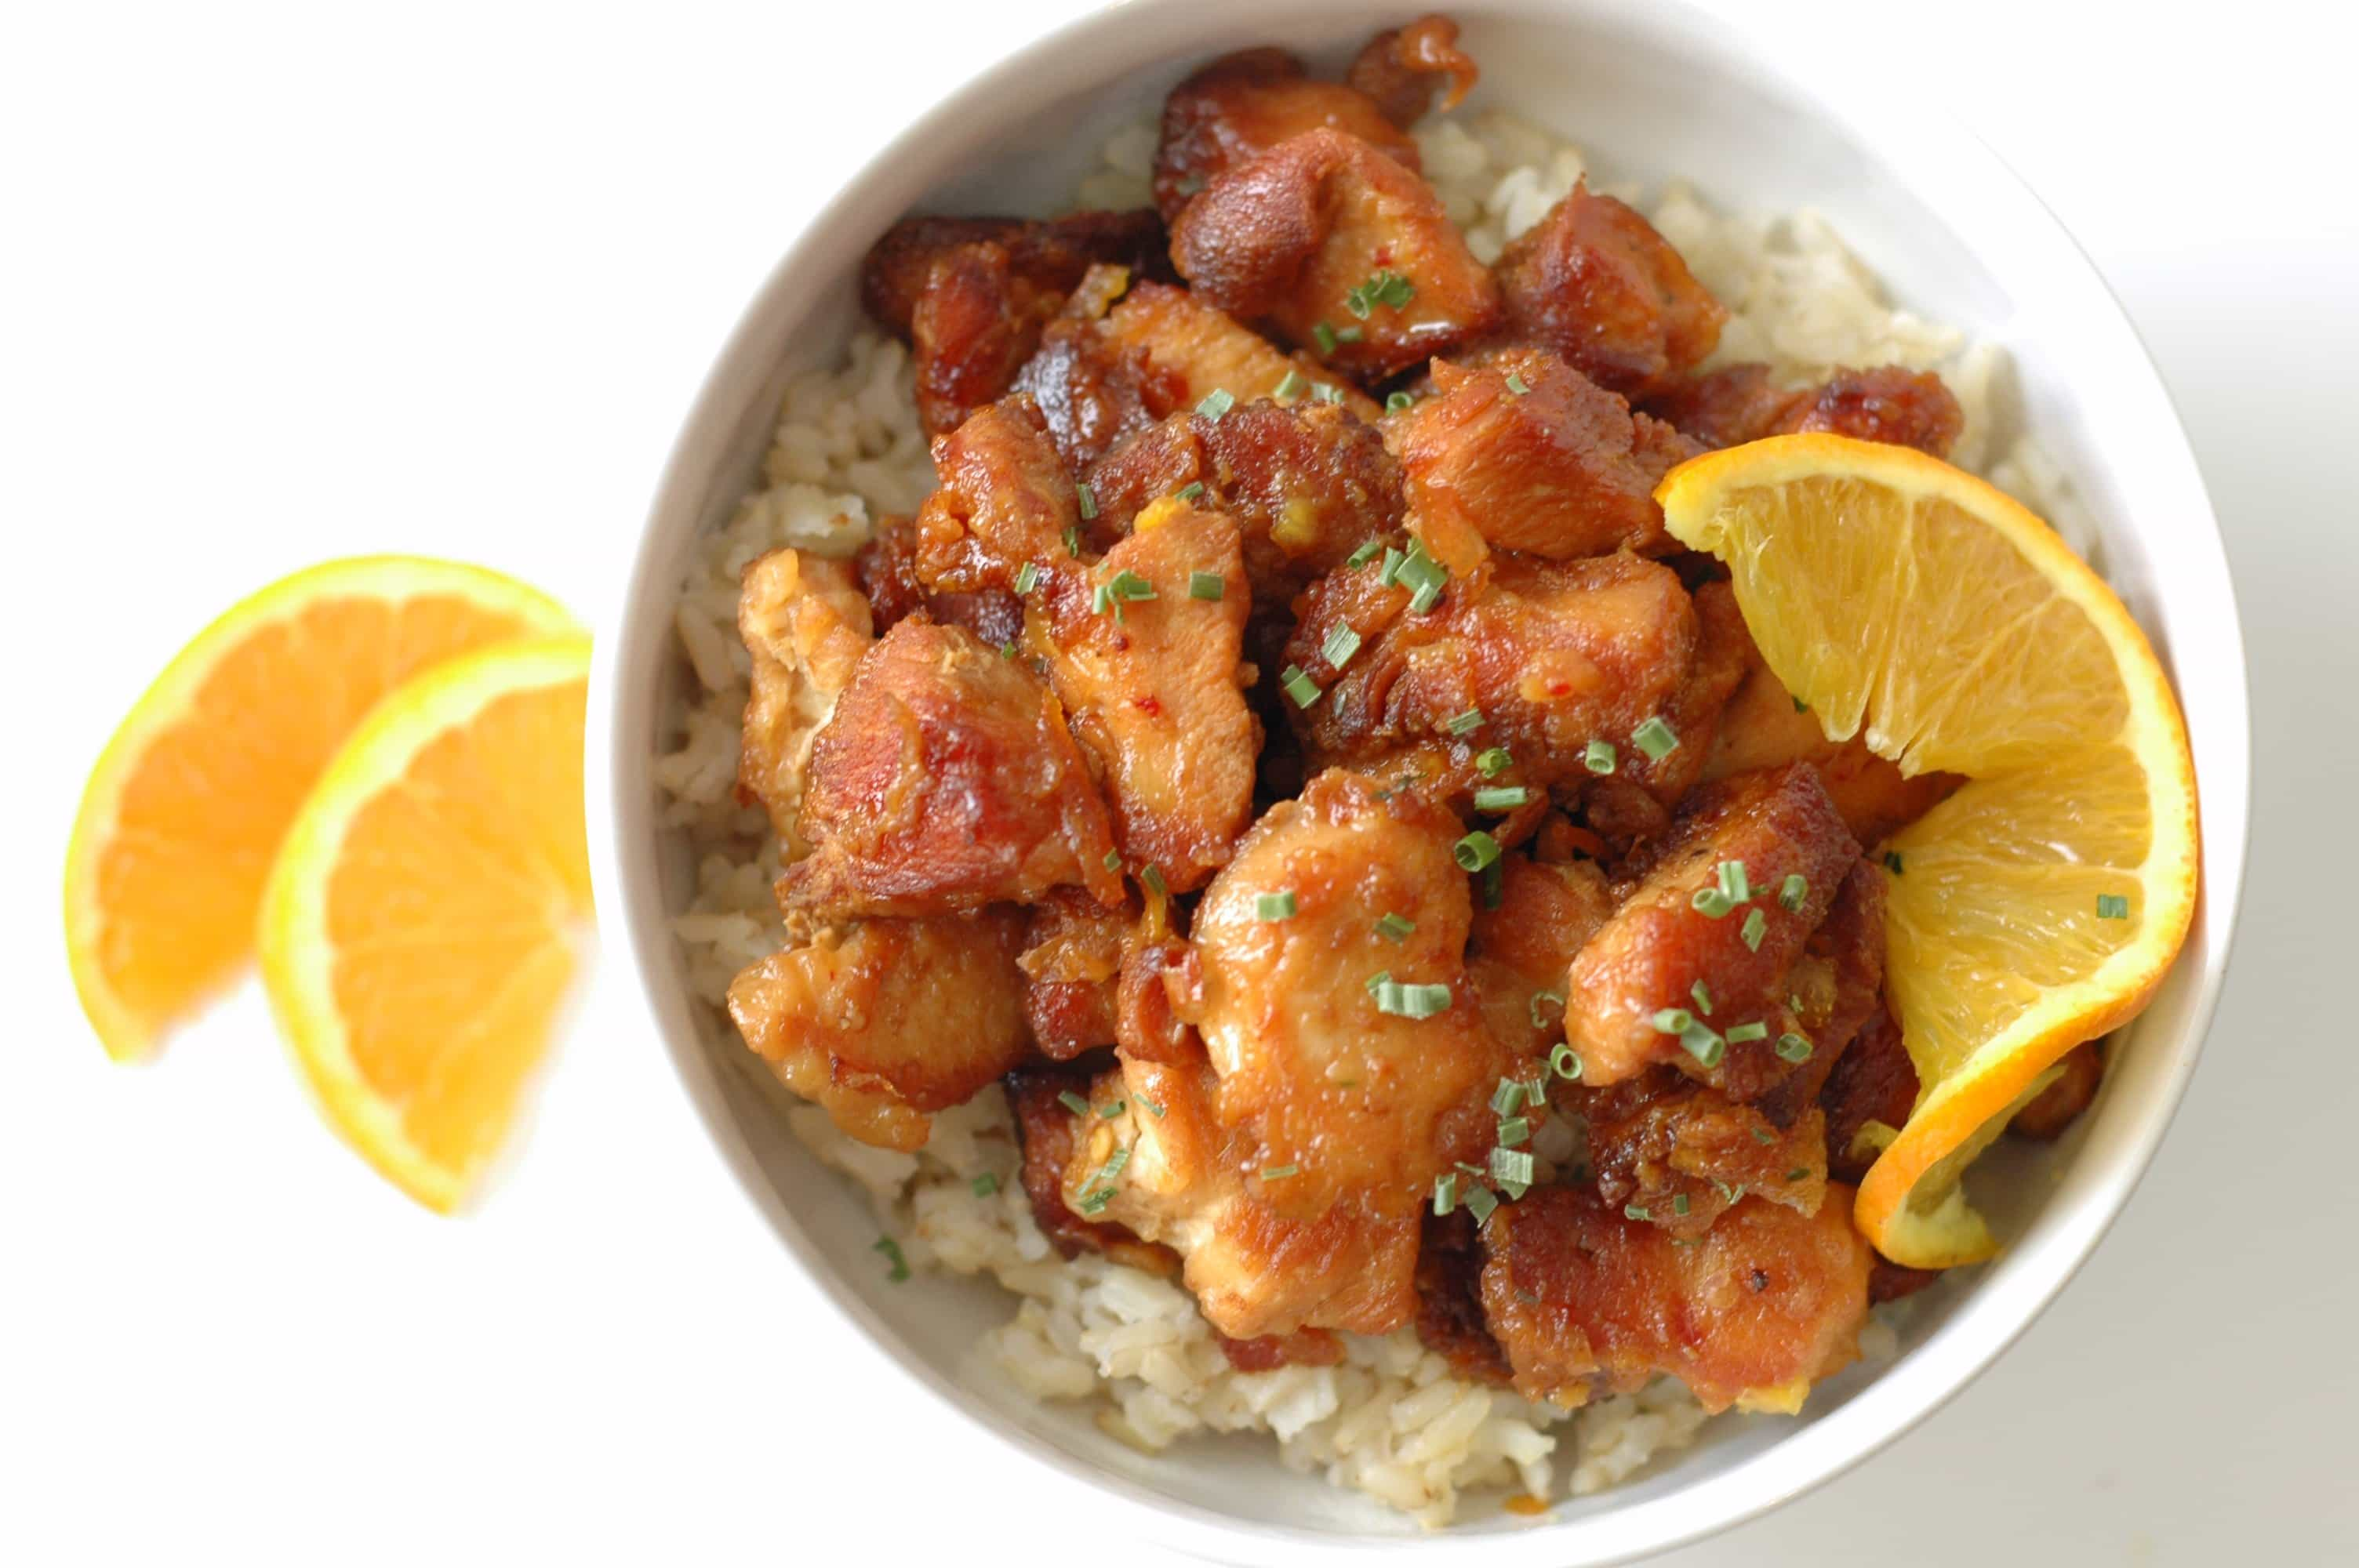 closeup of orange chicken on bed of rice with slice of orange in white bowl